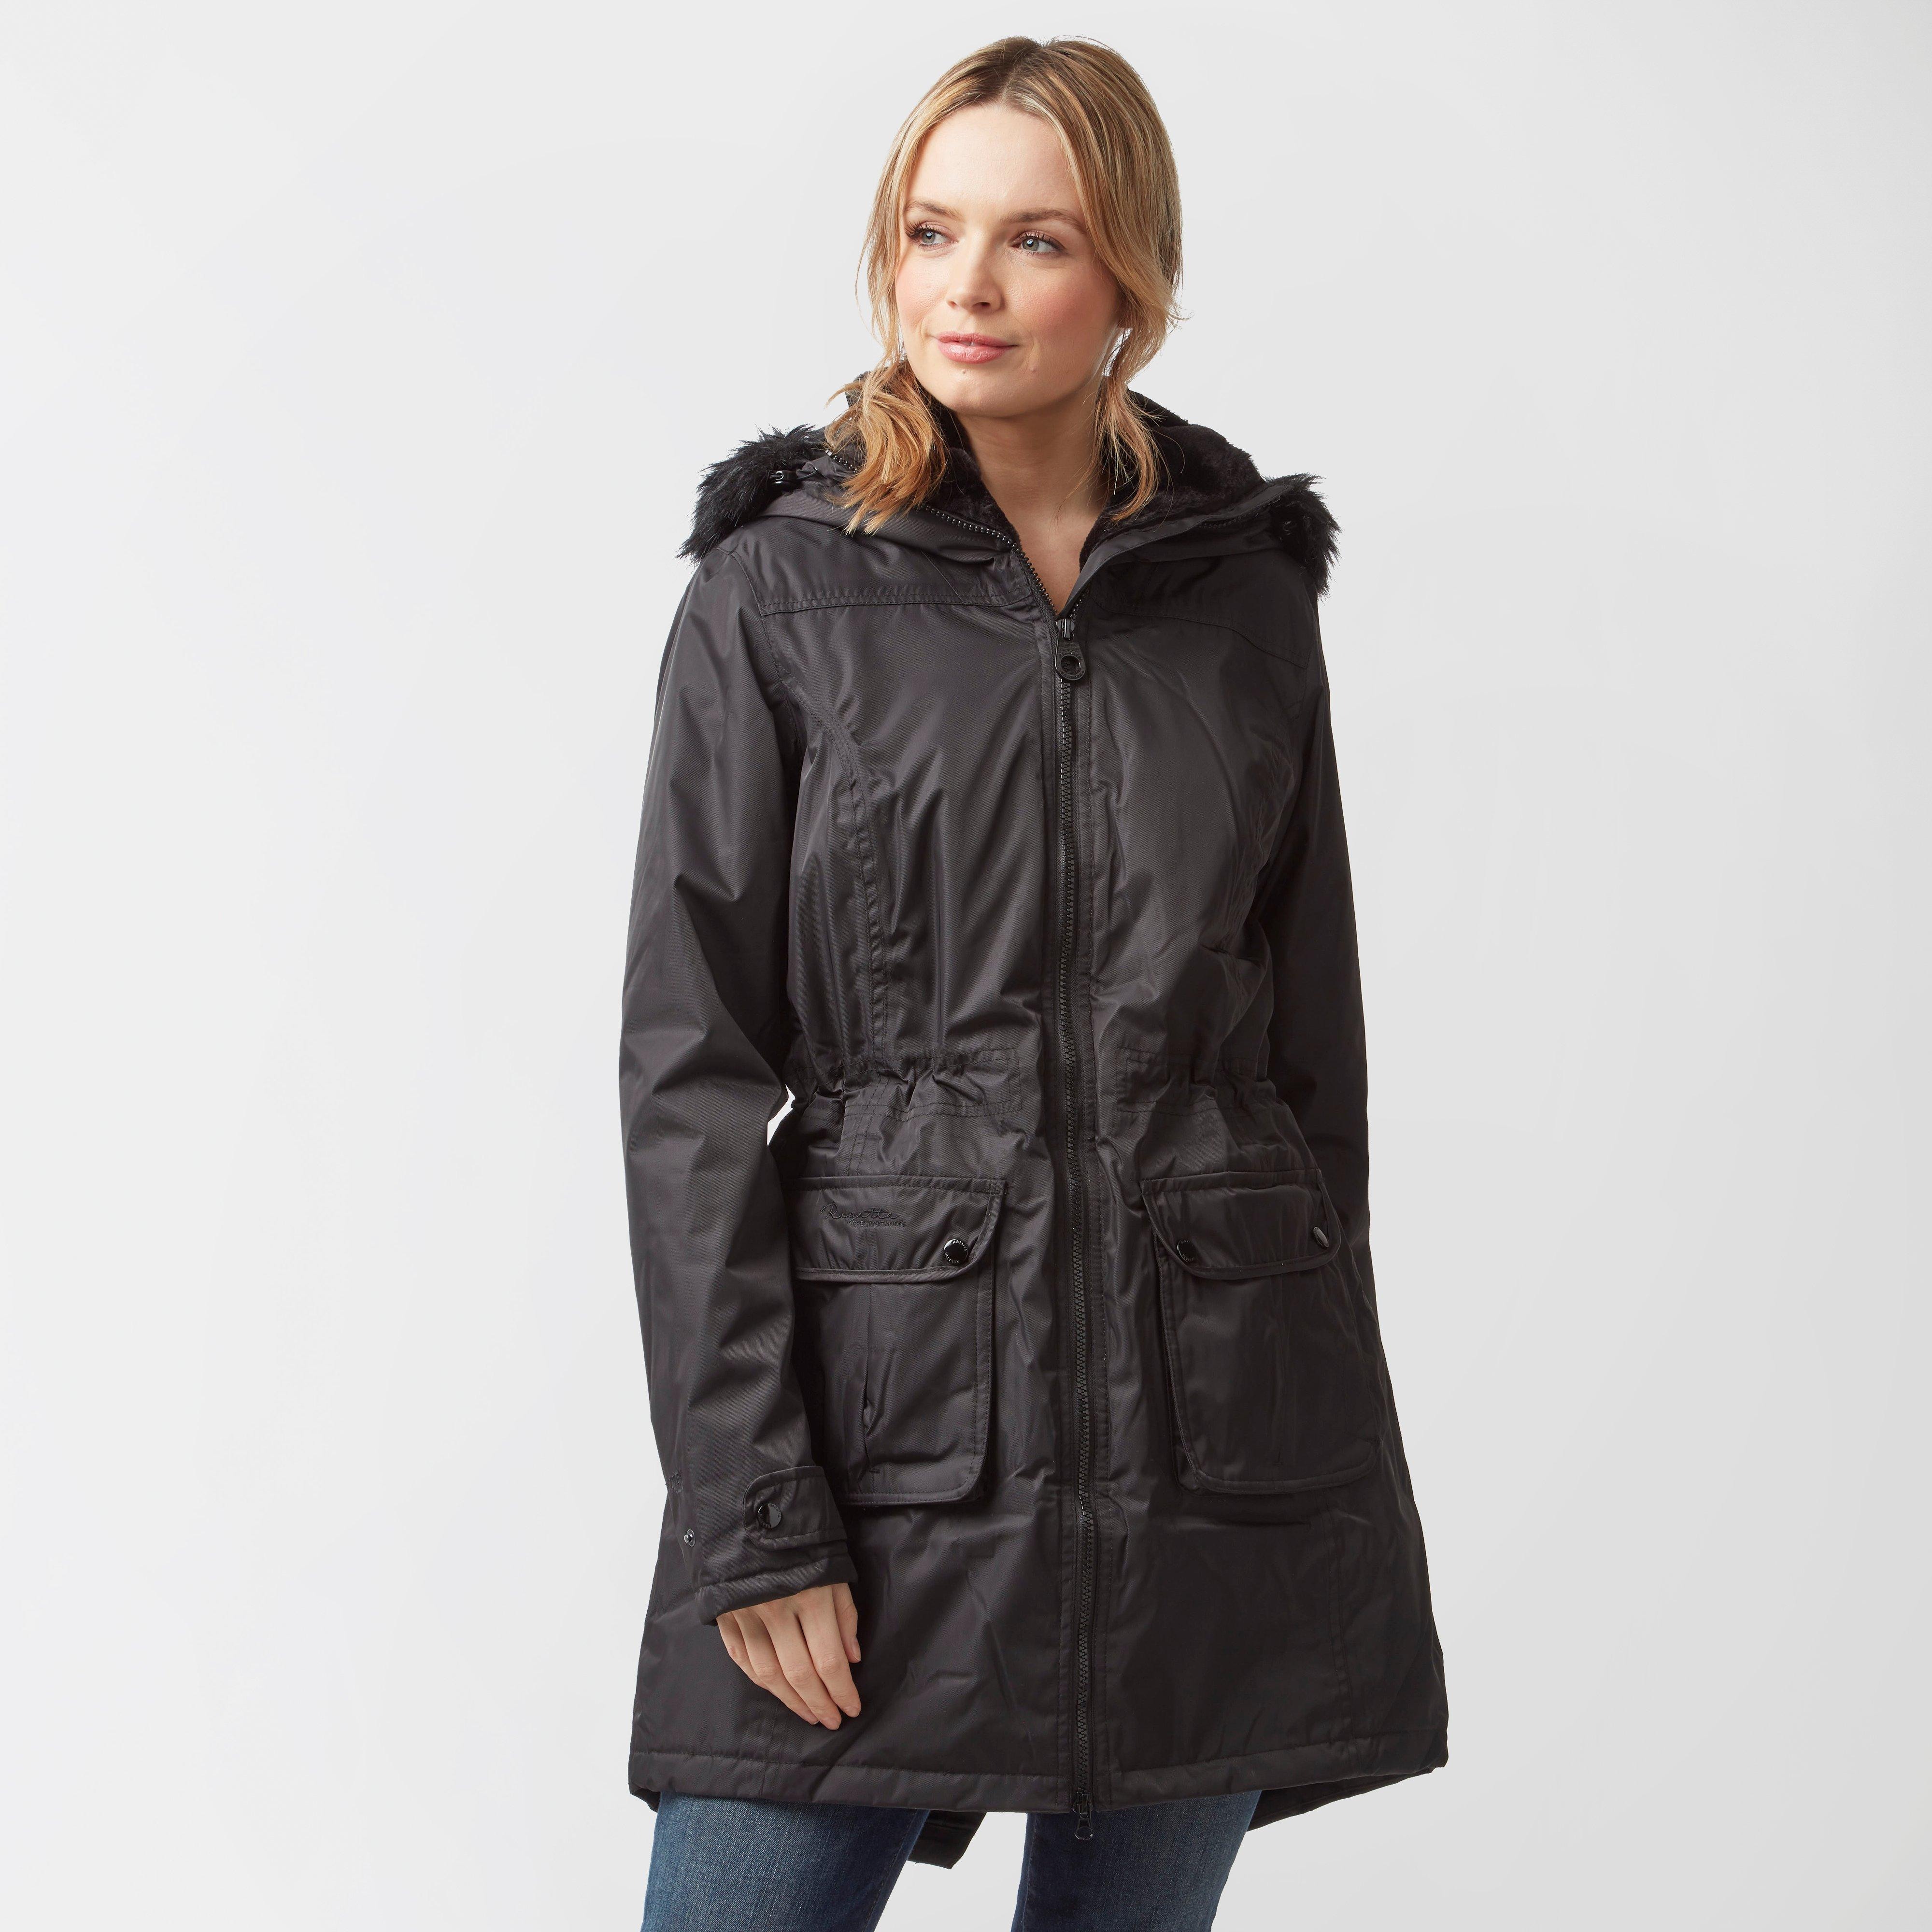 Regatta Women's Lucasta Waterproof Insulated Jacket, Black